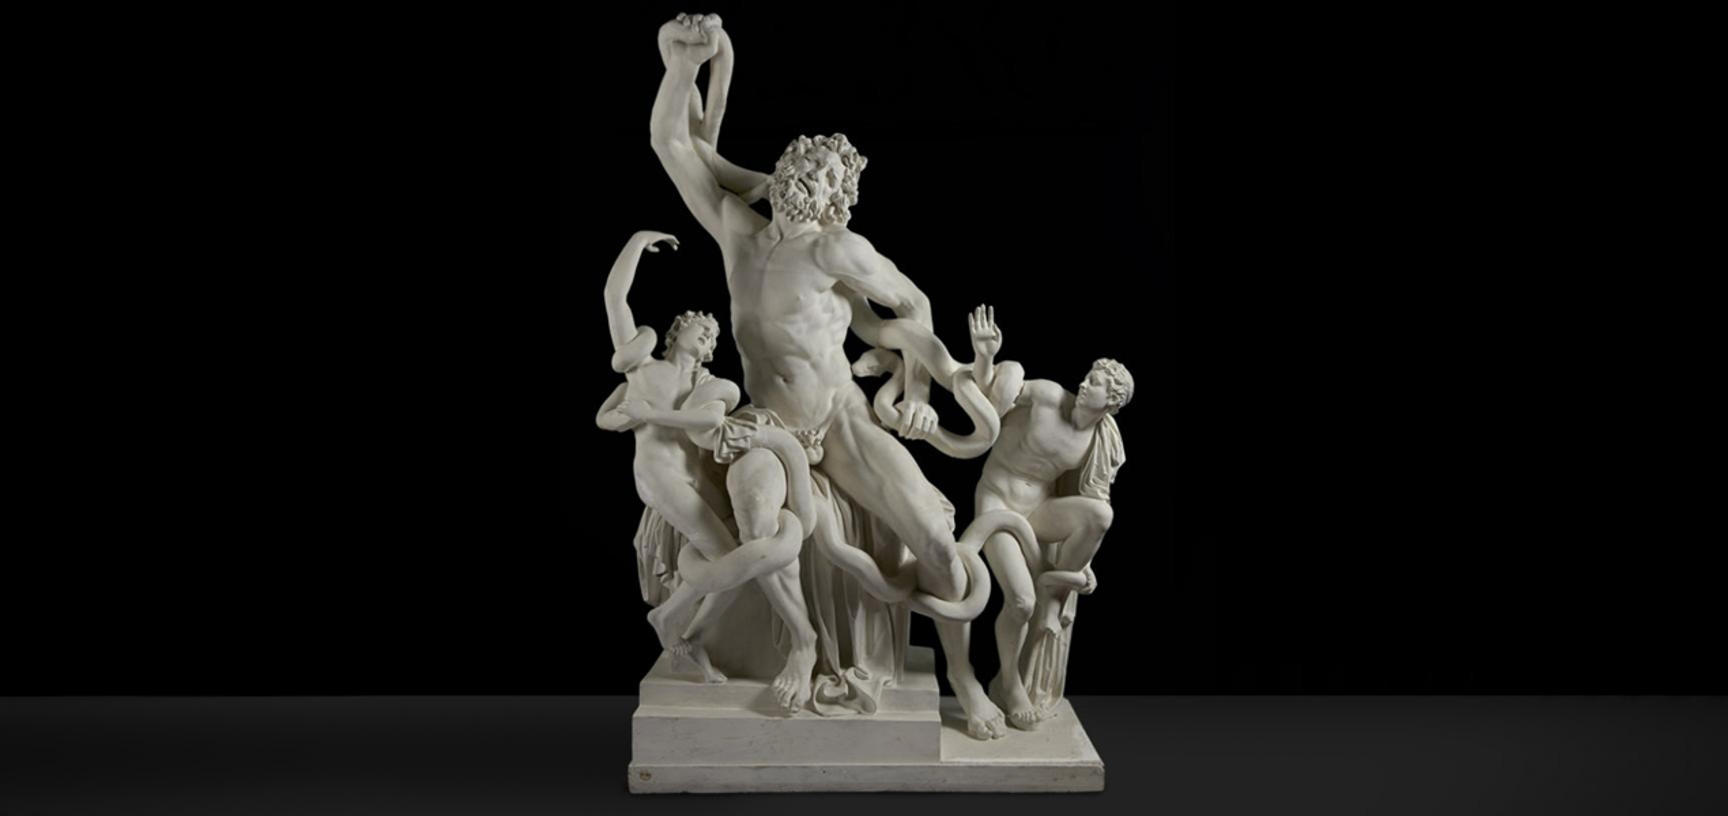 Laocoön group